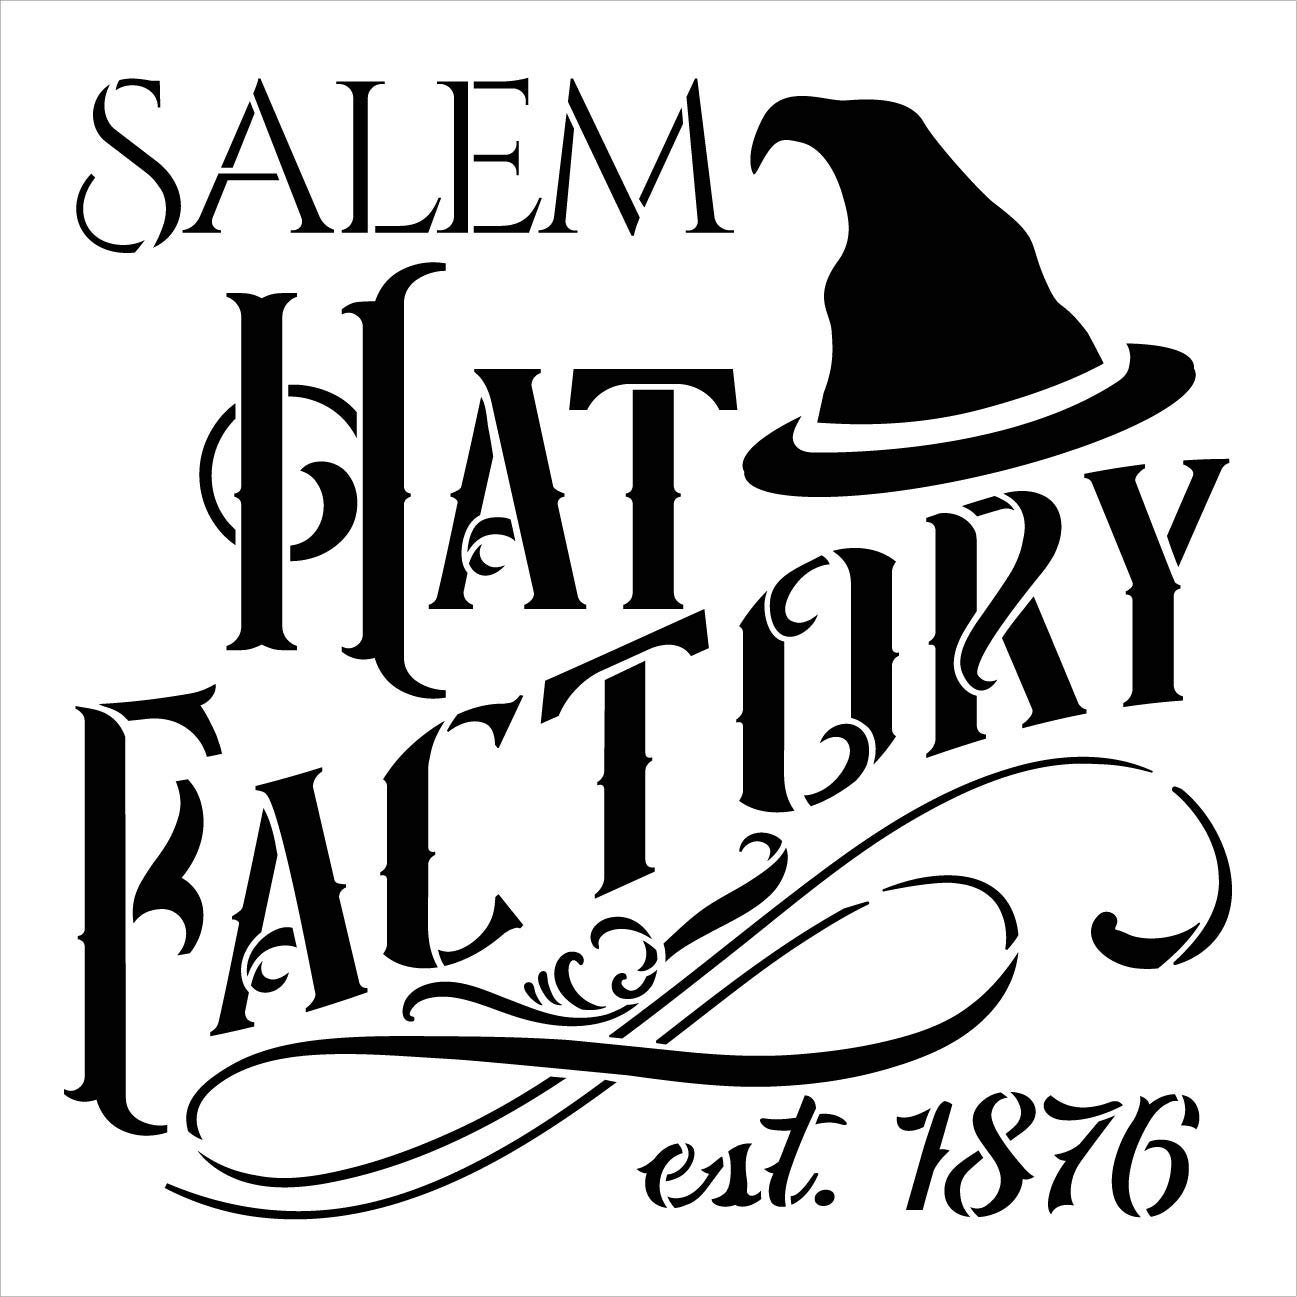 Salem Hat Factory Stencil by StudioR12 | DIY Halloween Witch Home Decor | Craft & Paint Wood Signs | Reusable Template | Select Size